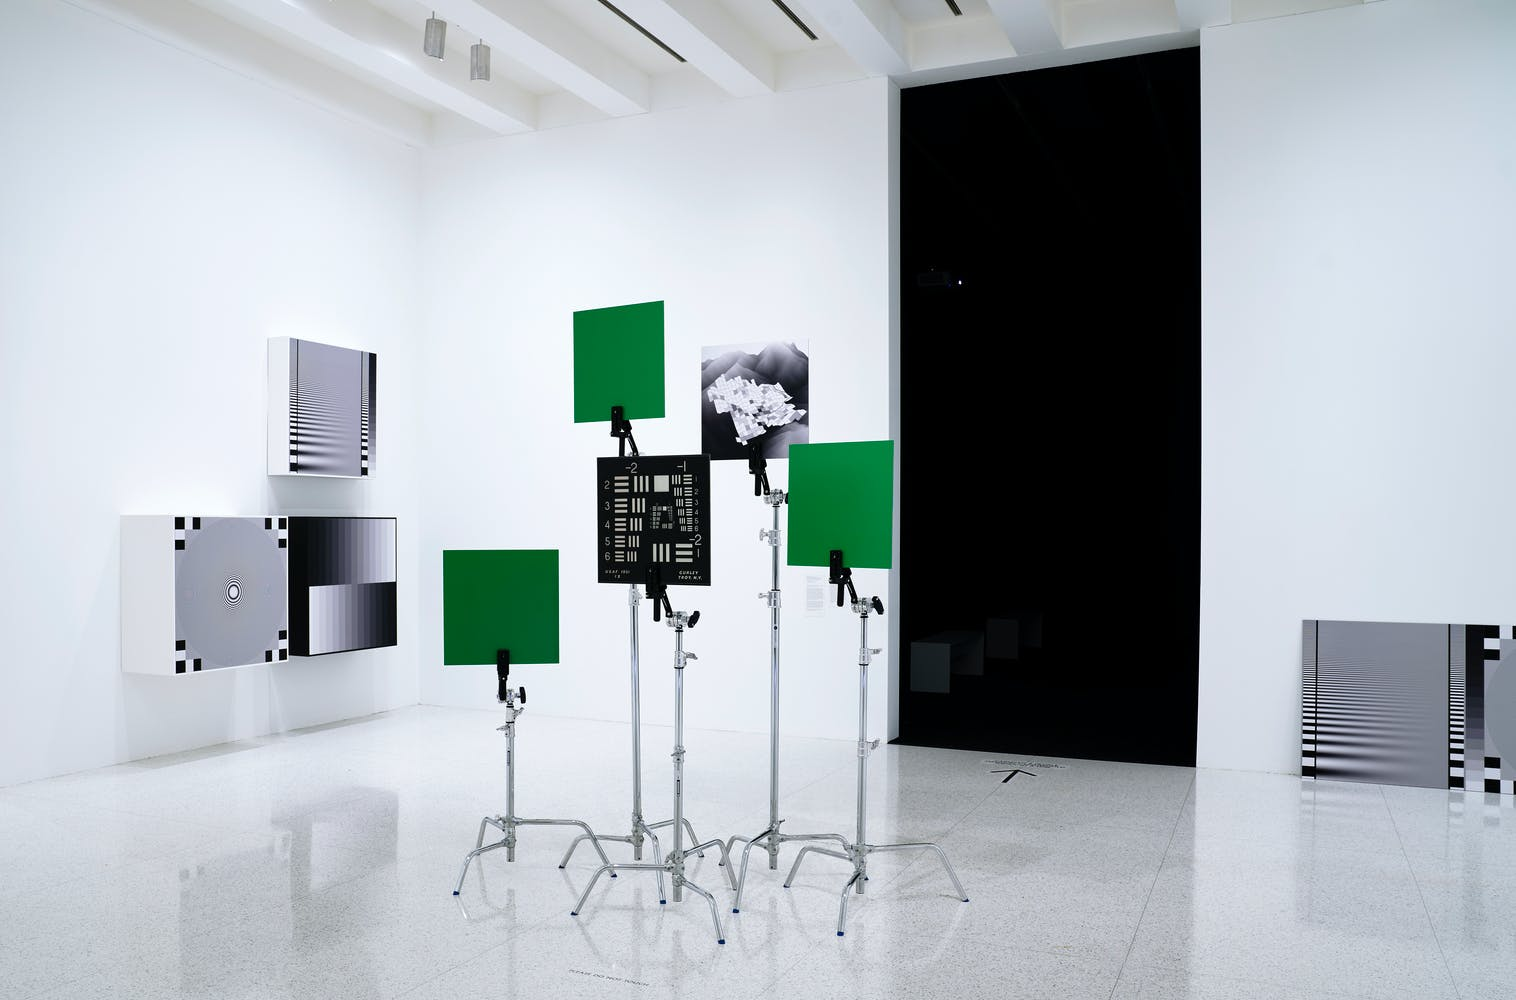 Image of gallery with green cards placed on metal stands in center of room